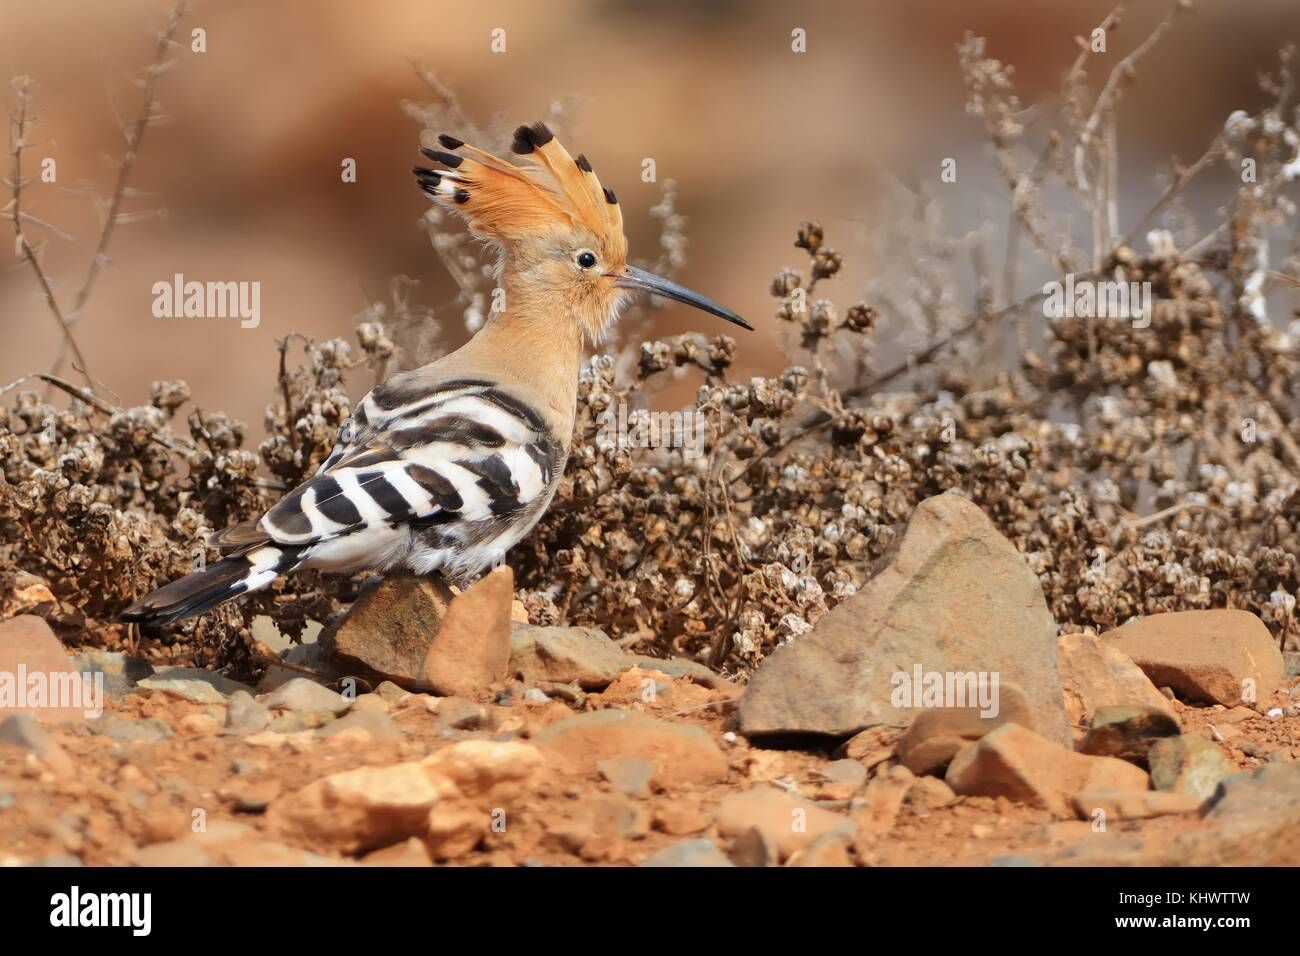 Eurasian Hoopoe - Upupa epops sitting on the ground - Stock Image